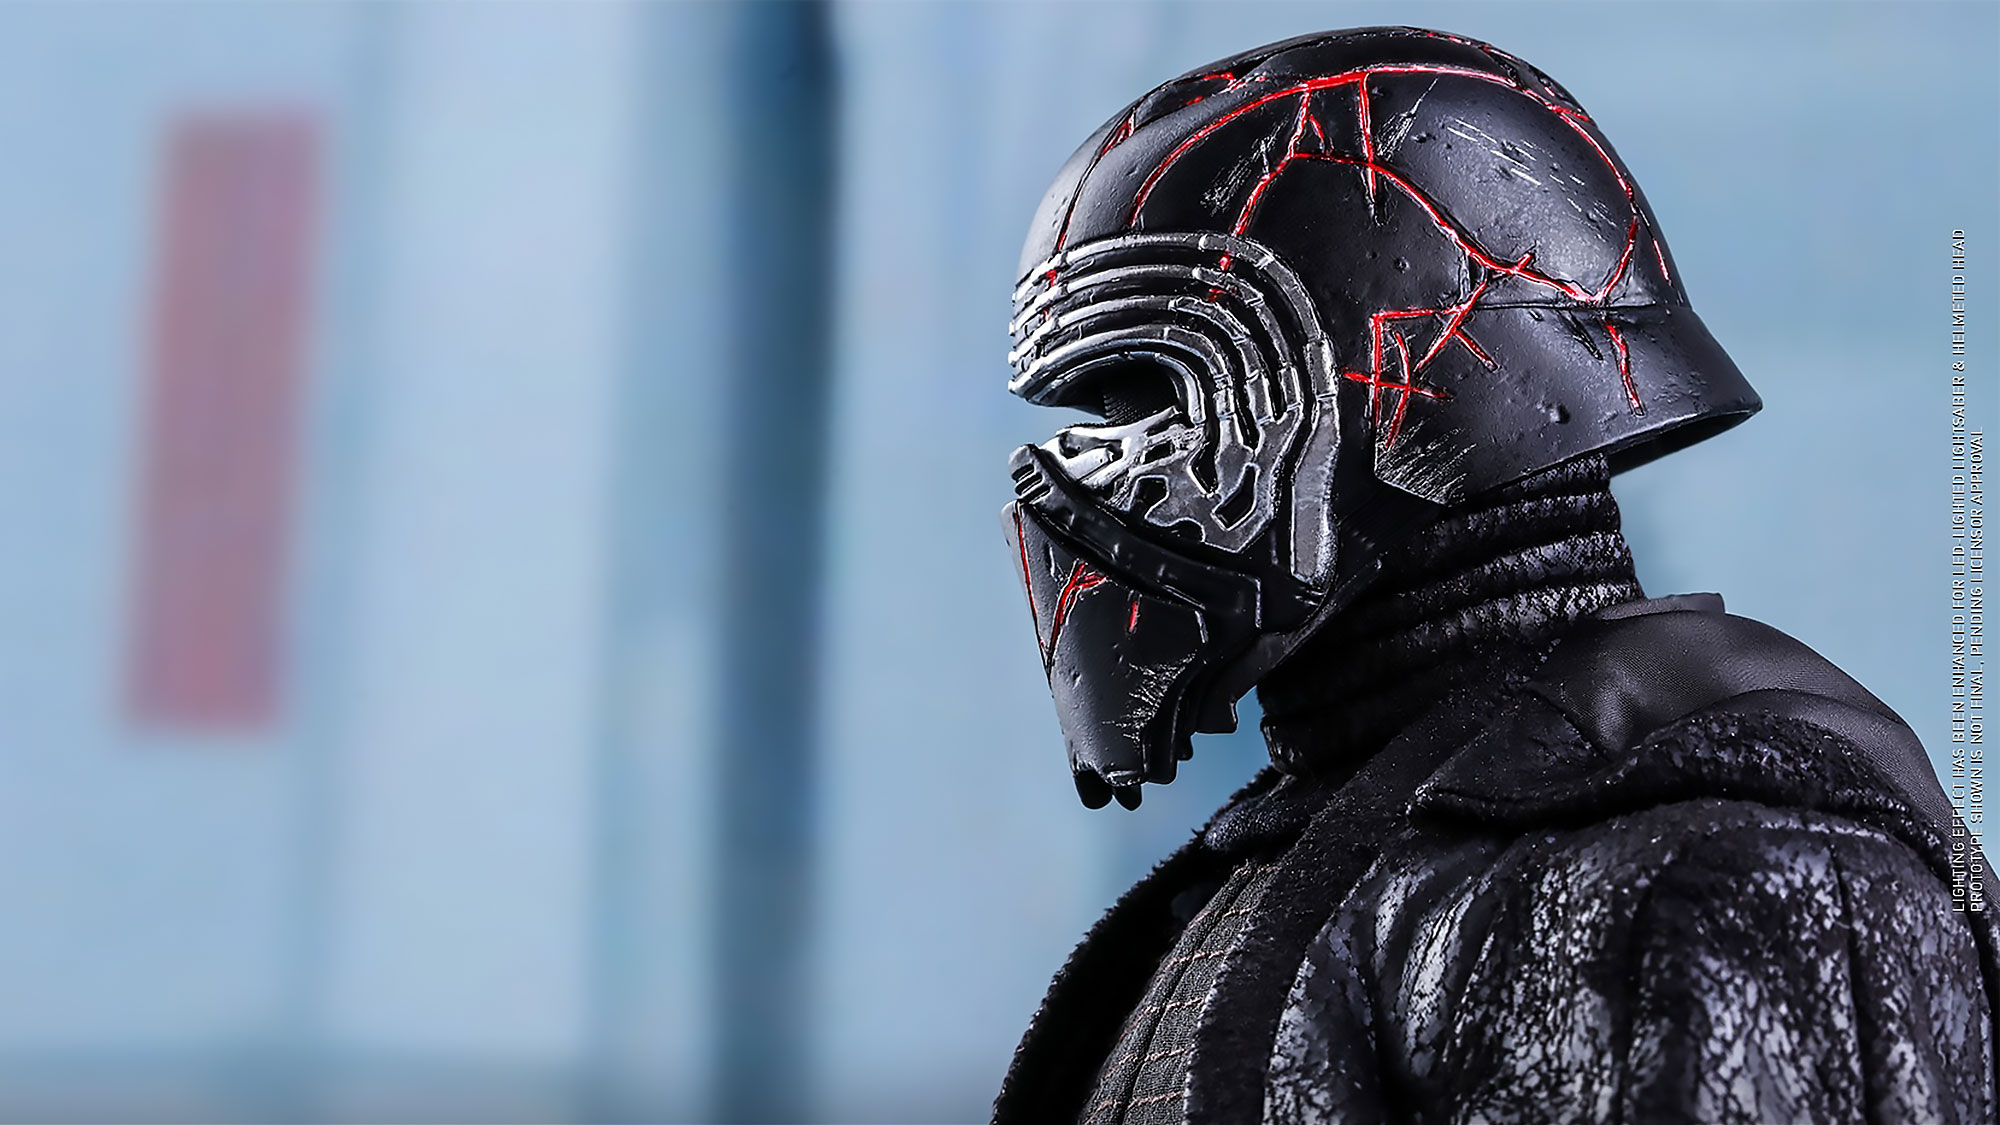 The Cracks On This Star Wars The Rise Of Skywalker Kylo Ren Figure Glows Red Shouts